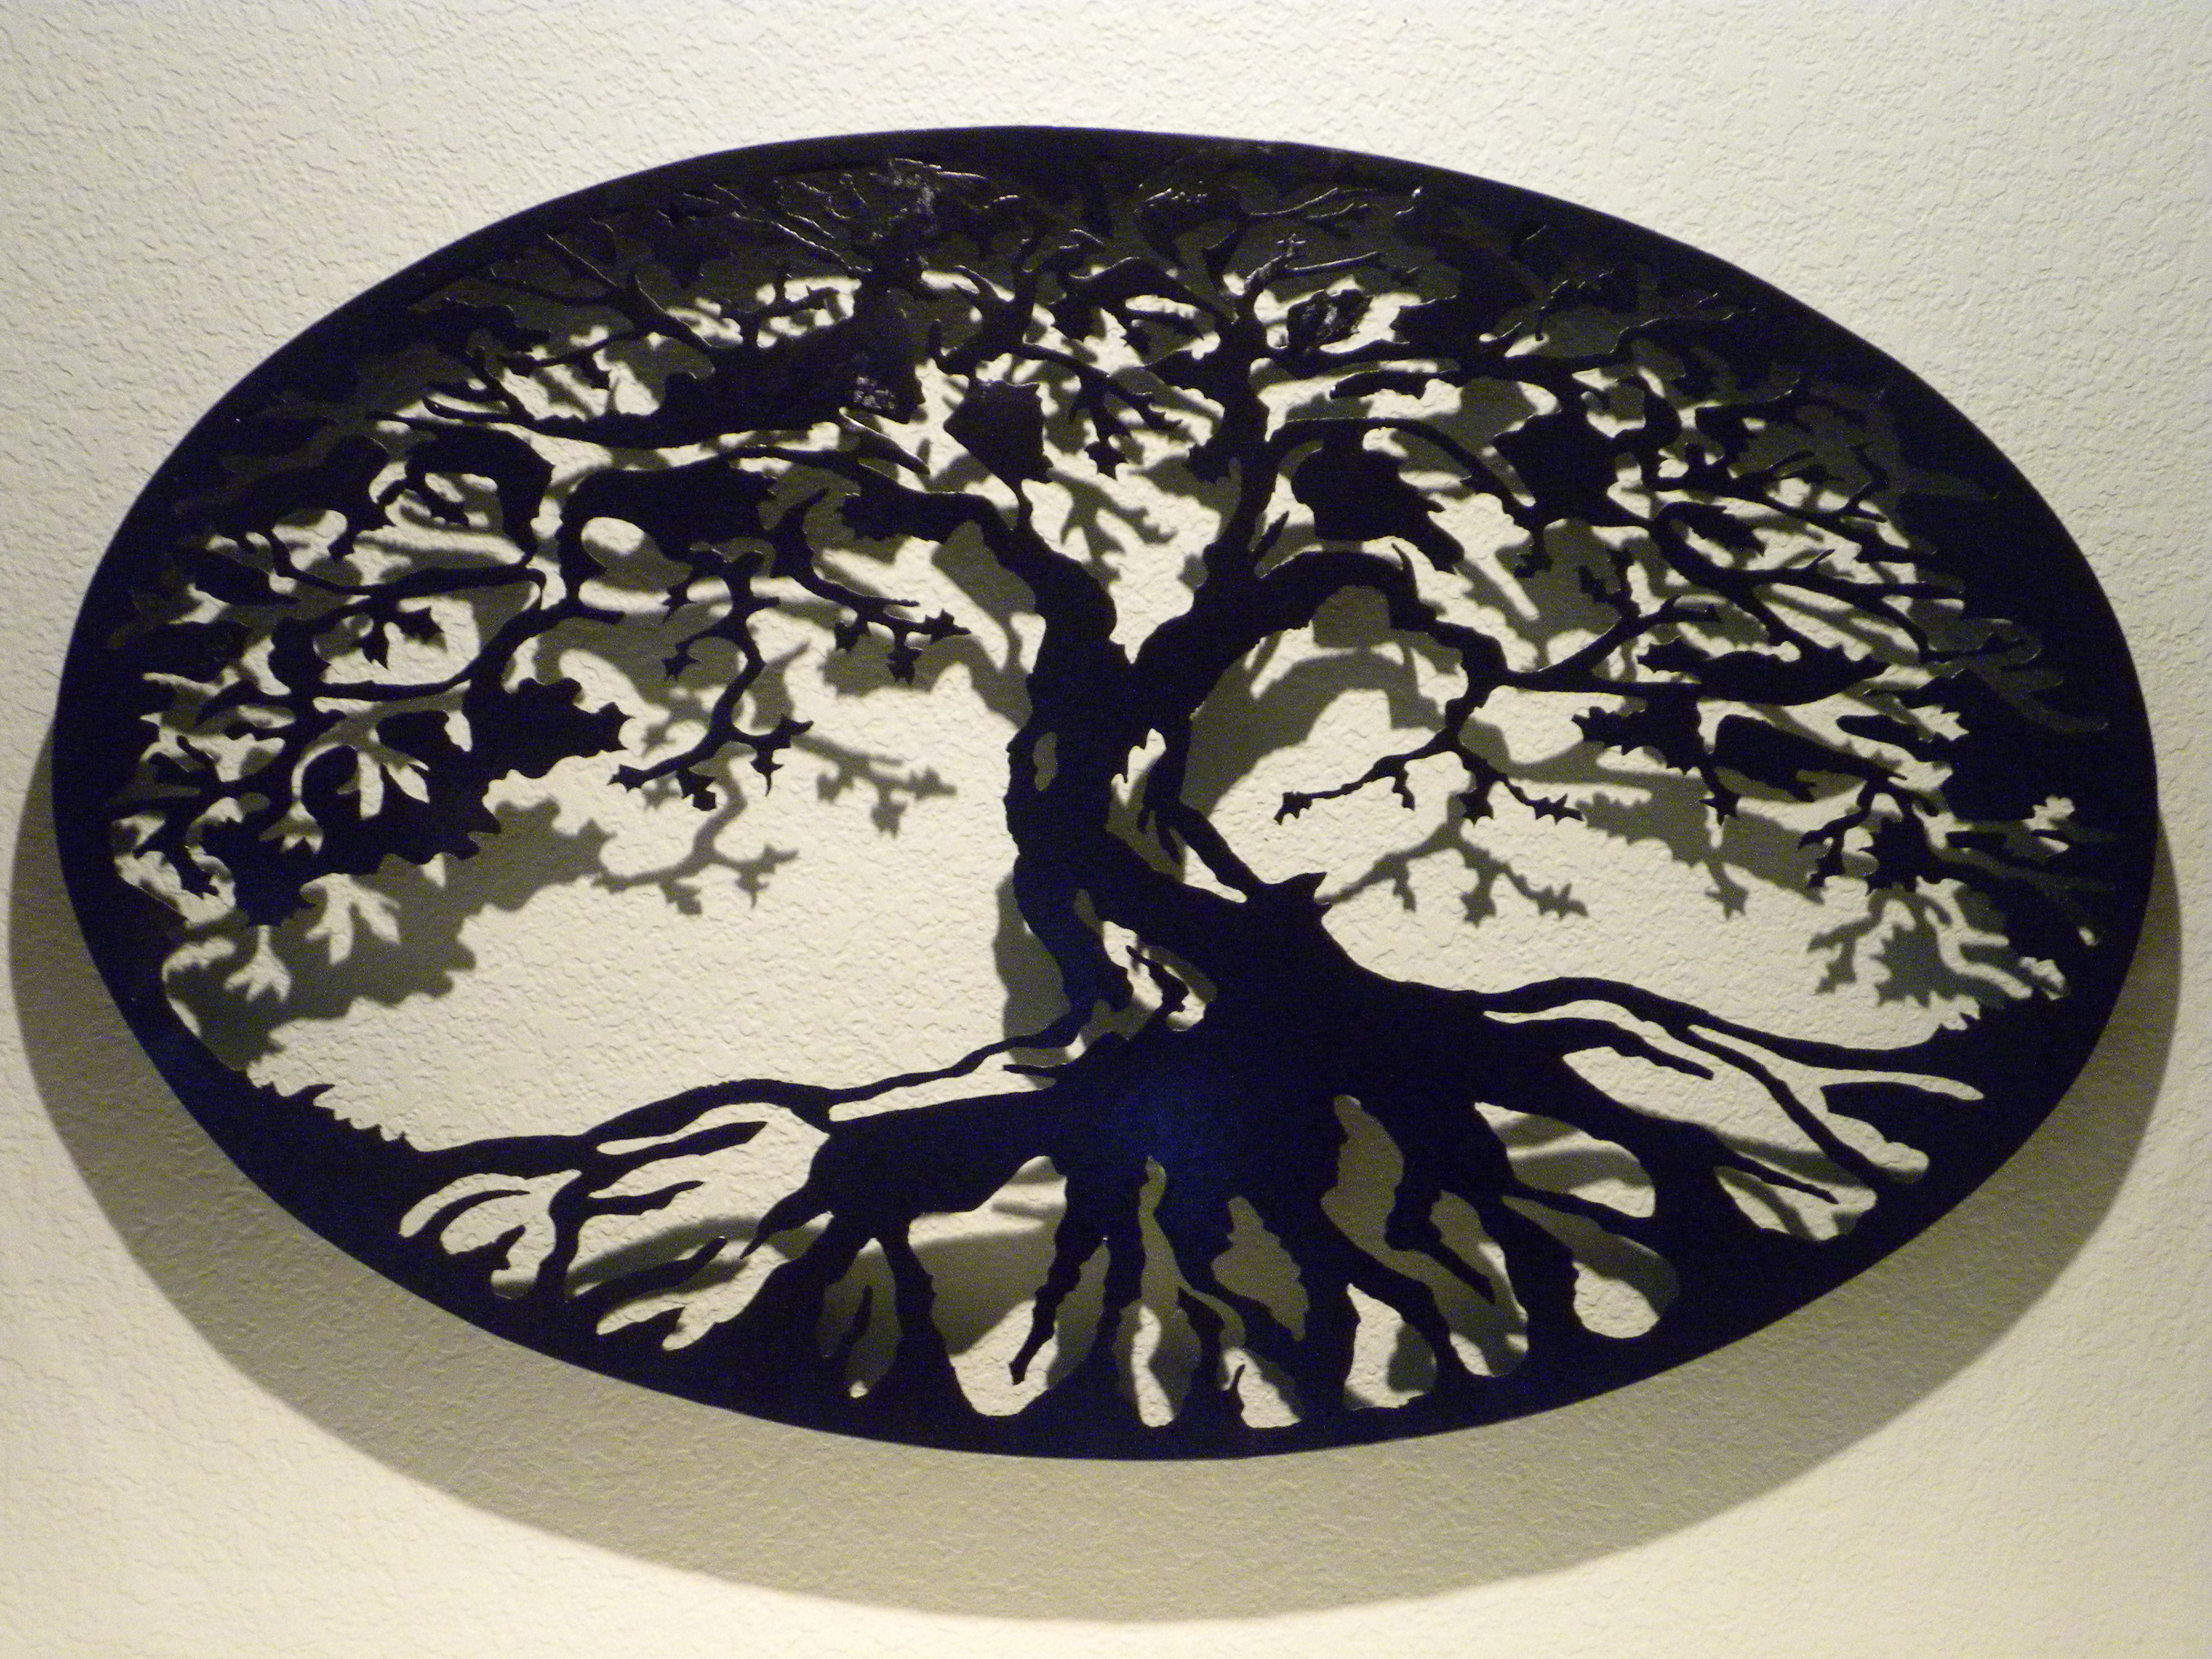 Buy A Custom Oval Tree Of Life Metal Wall Art, Made To Order From For Well Known Tree Of Life Wall Decor (View 5 of 20)